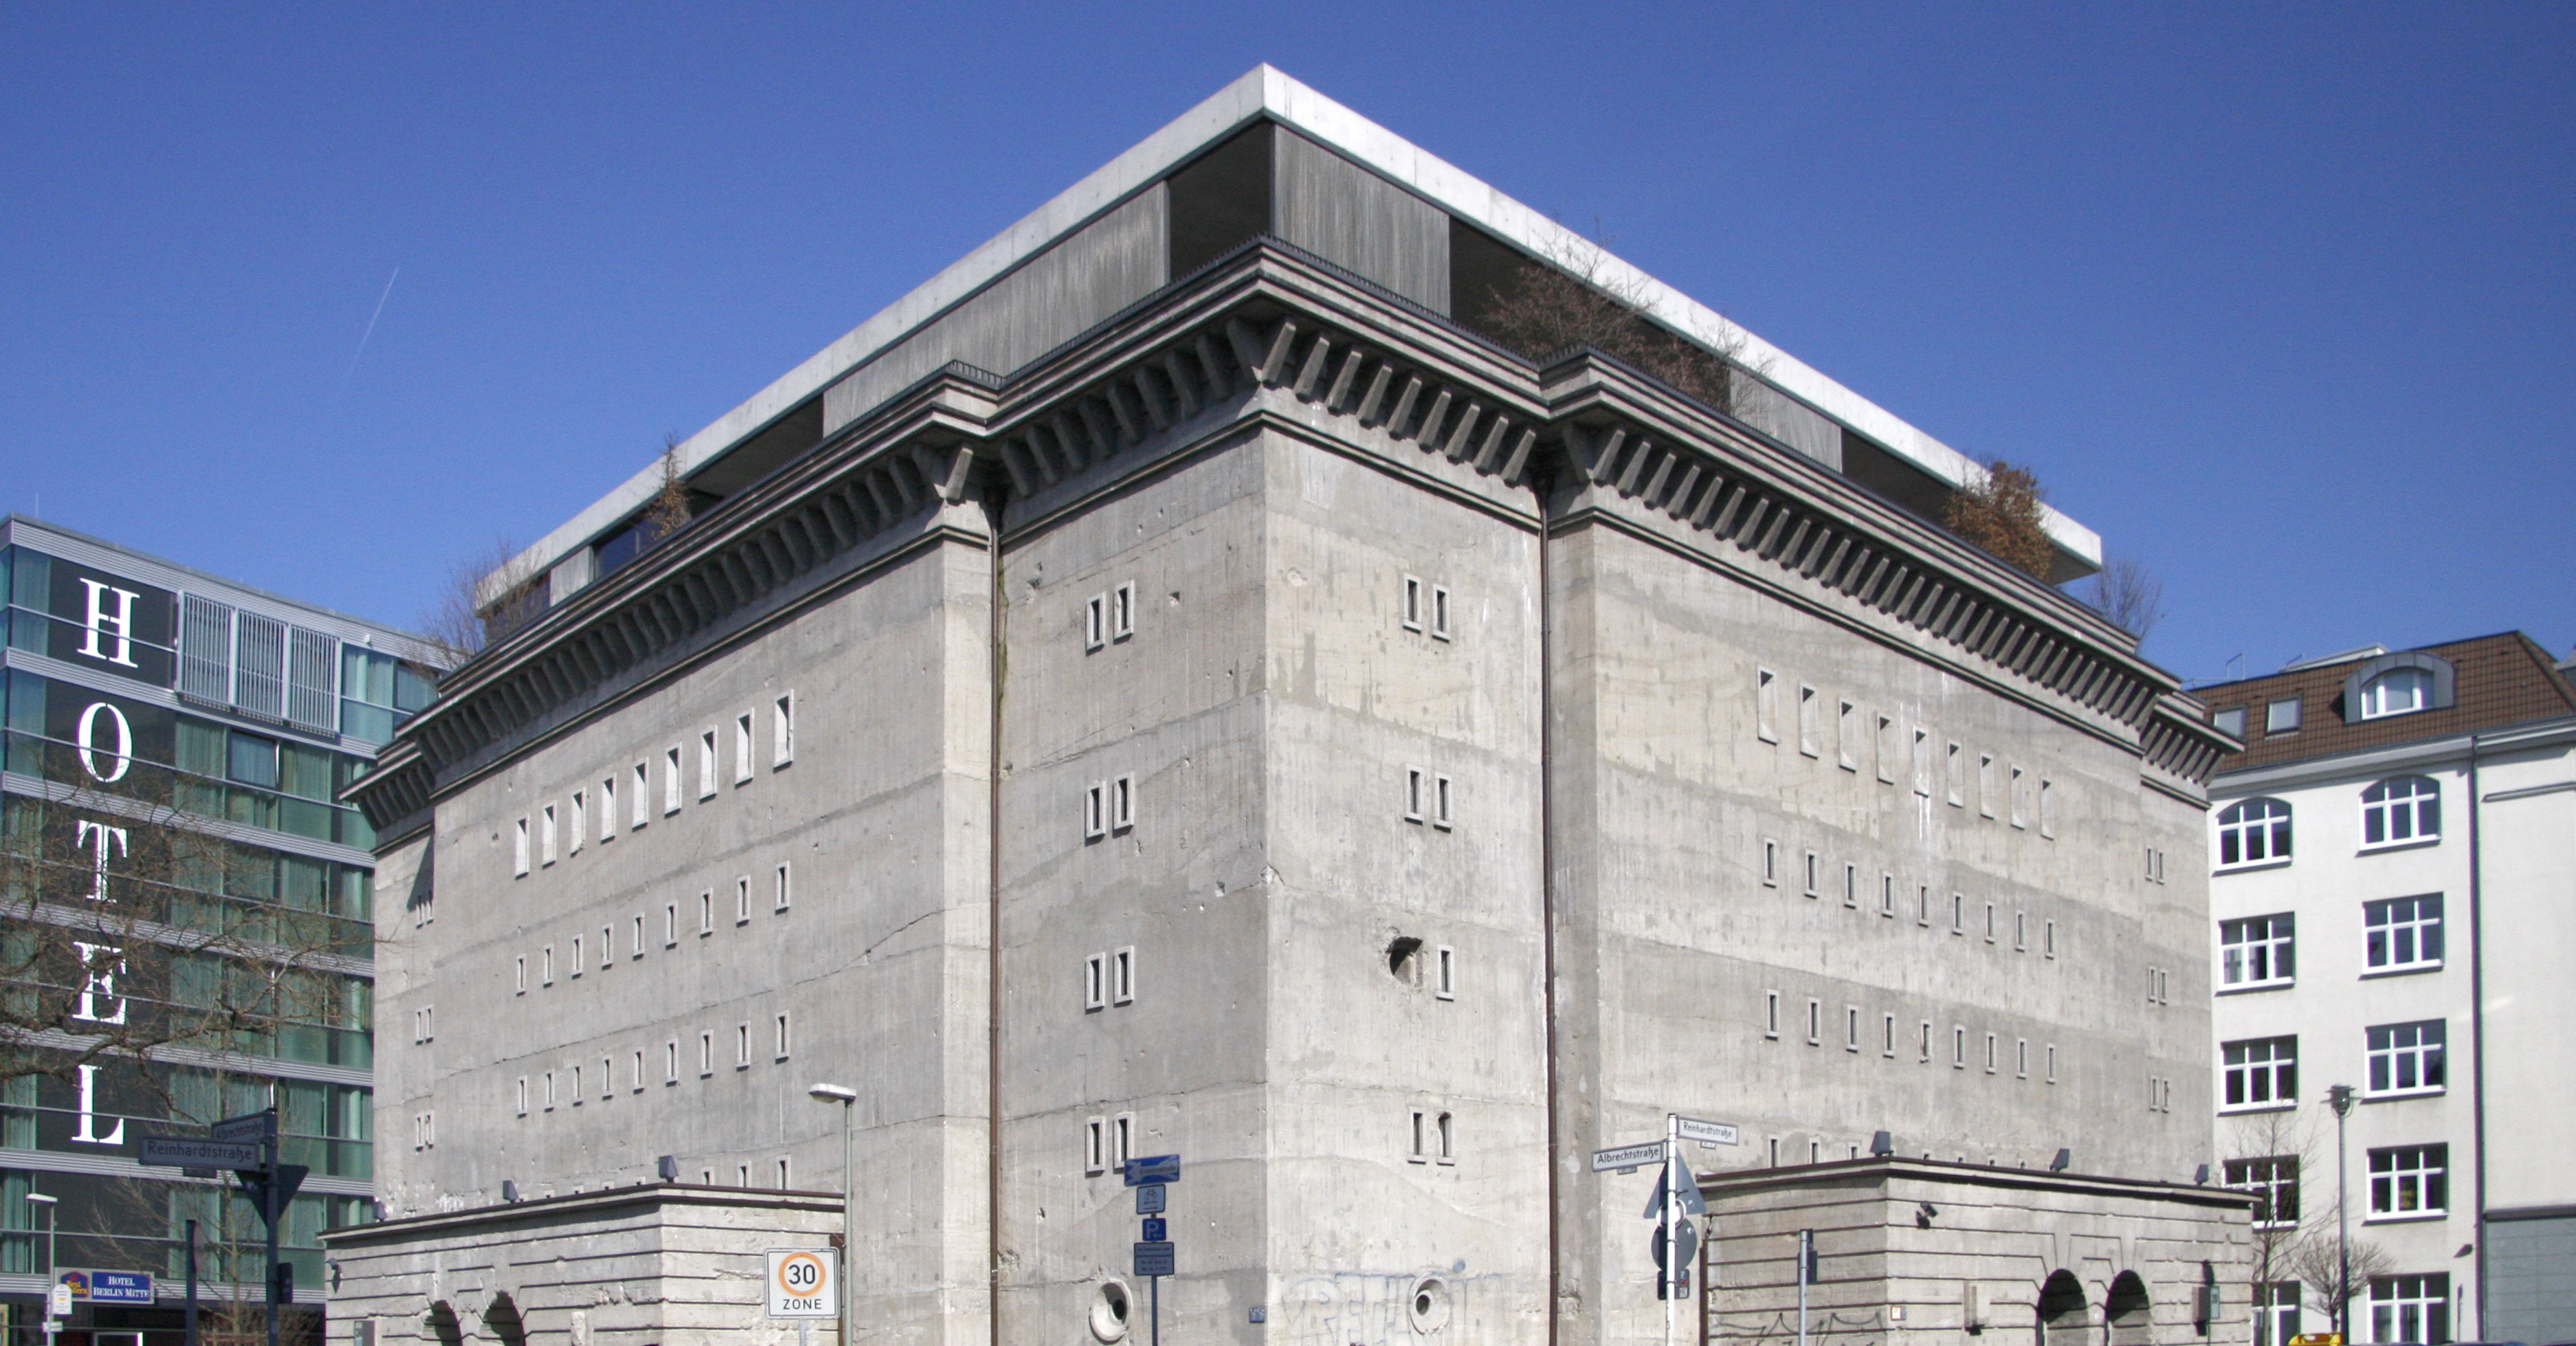 Uncover The Mystery Of The Boros Bunker In Berlin